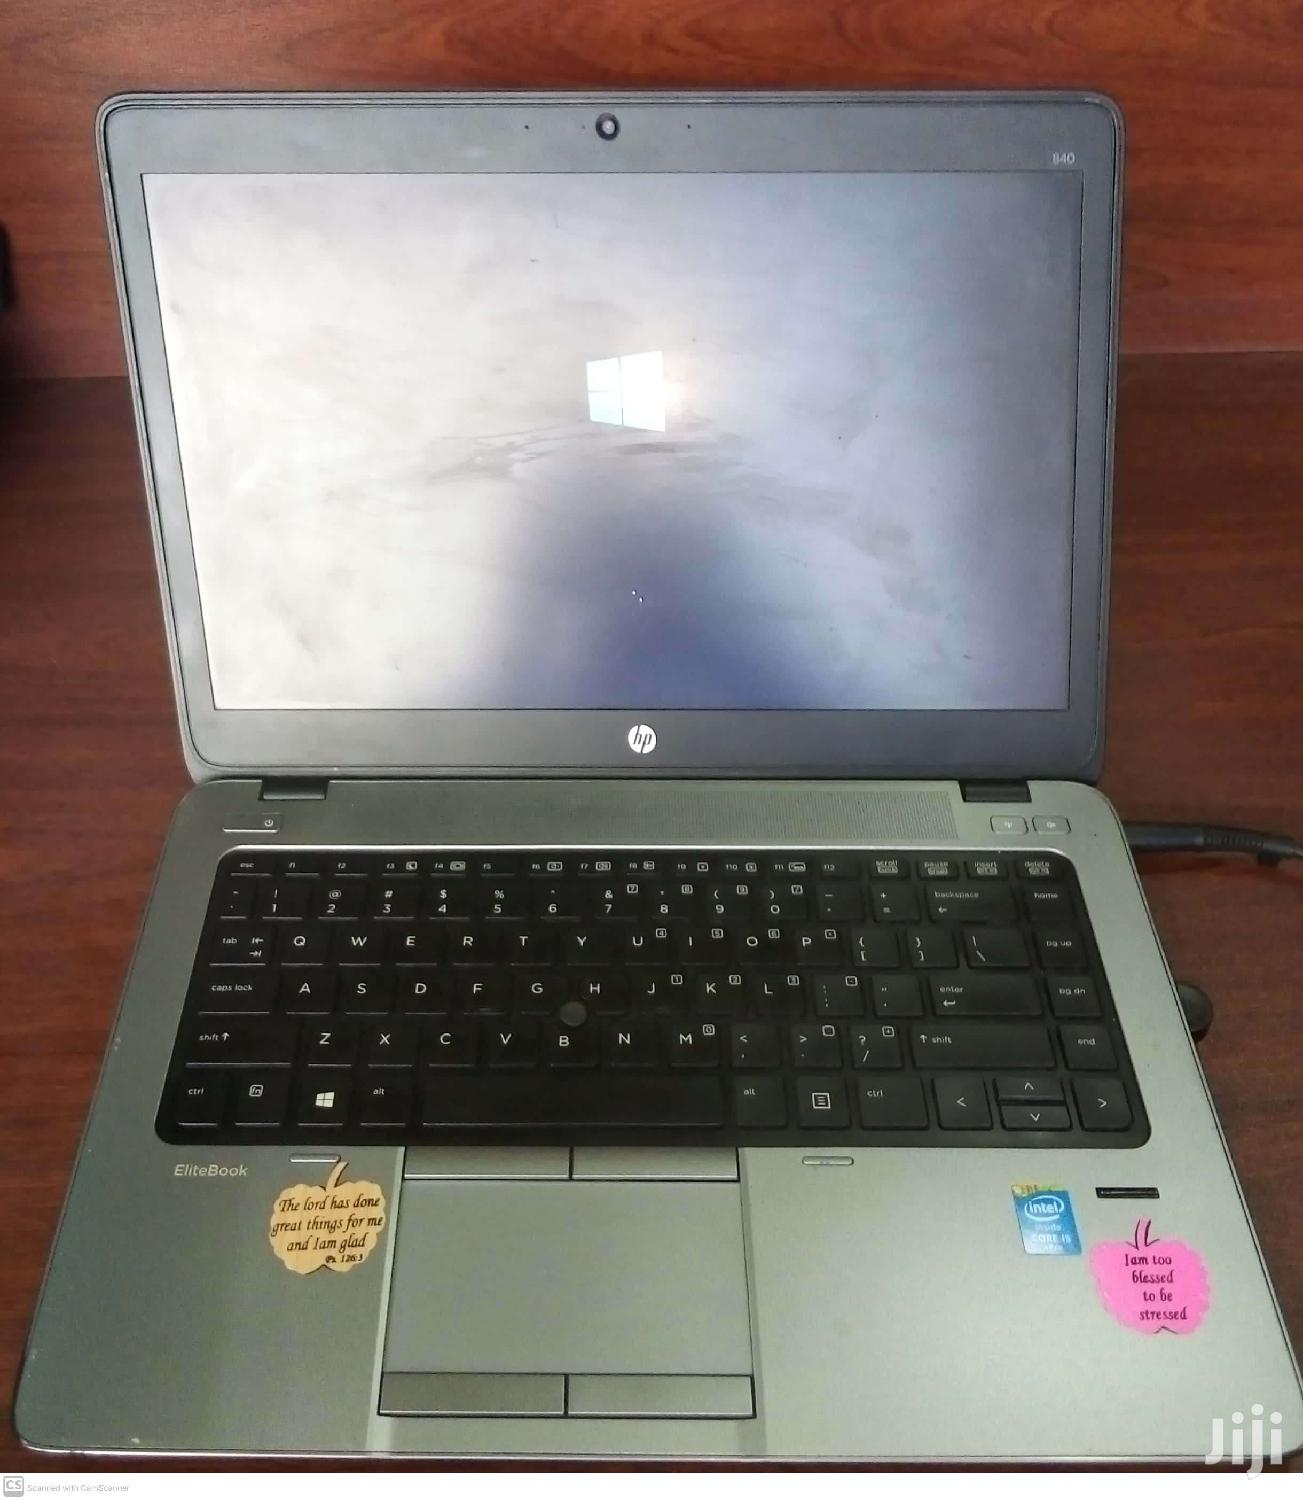 Laptop HP EliteBook 840 G1 4GB Intel Core I5 HDD 500GB | Laptops & Computers for sale in Kampala, Central Region, Uganda